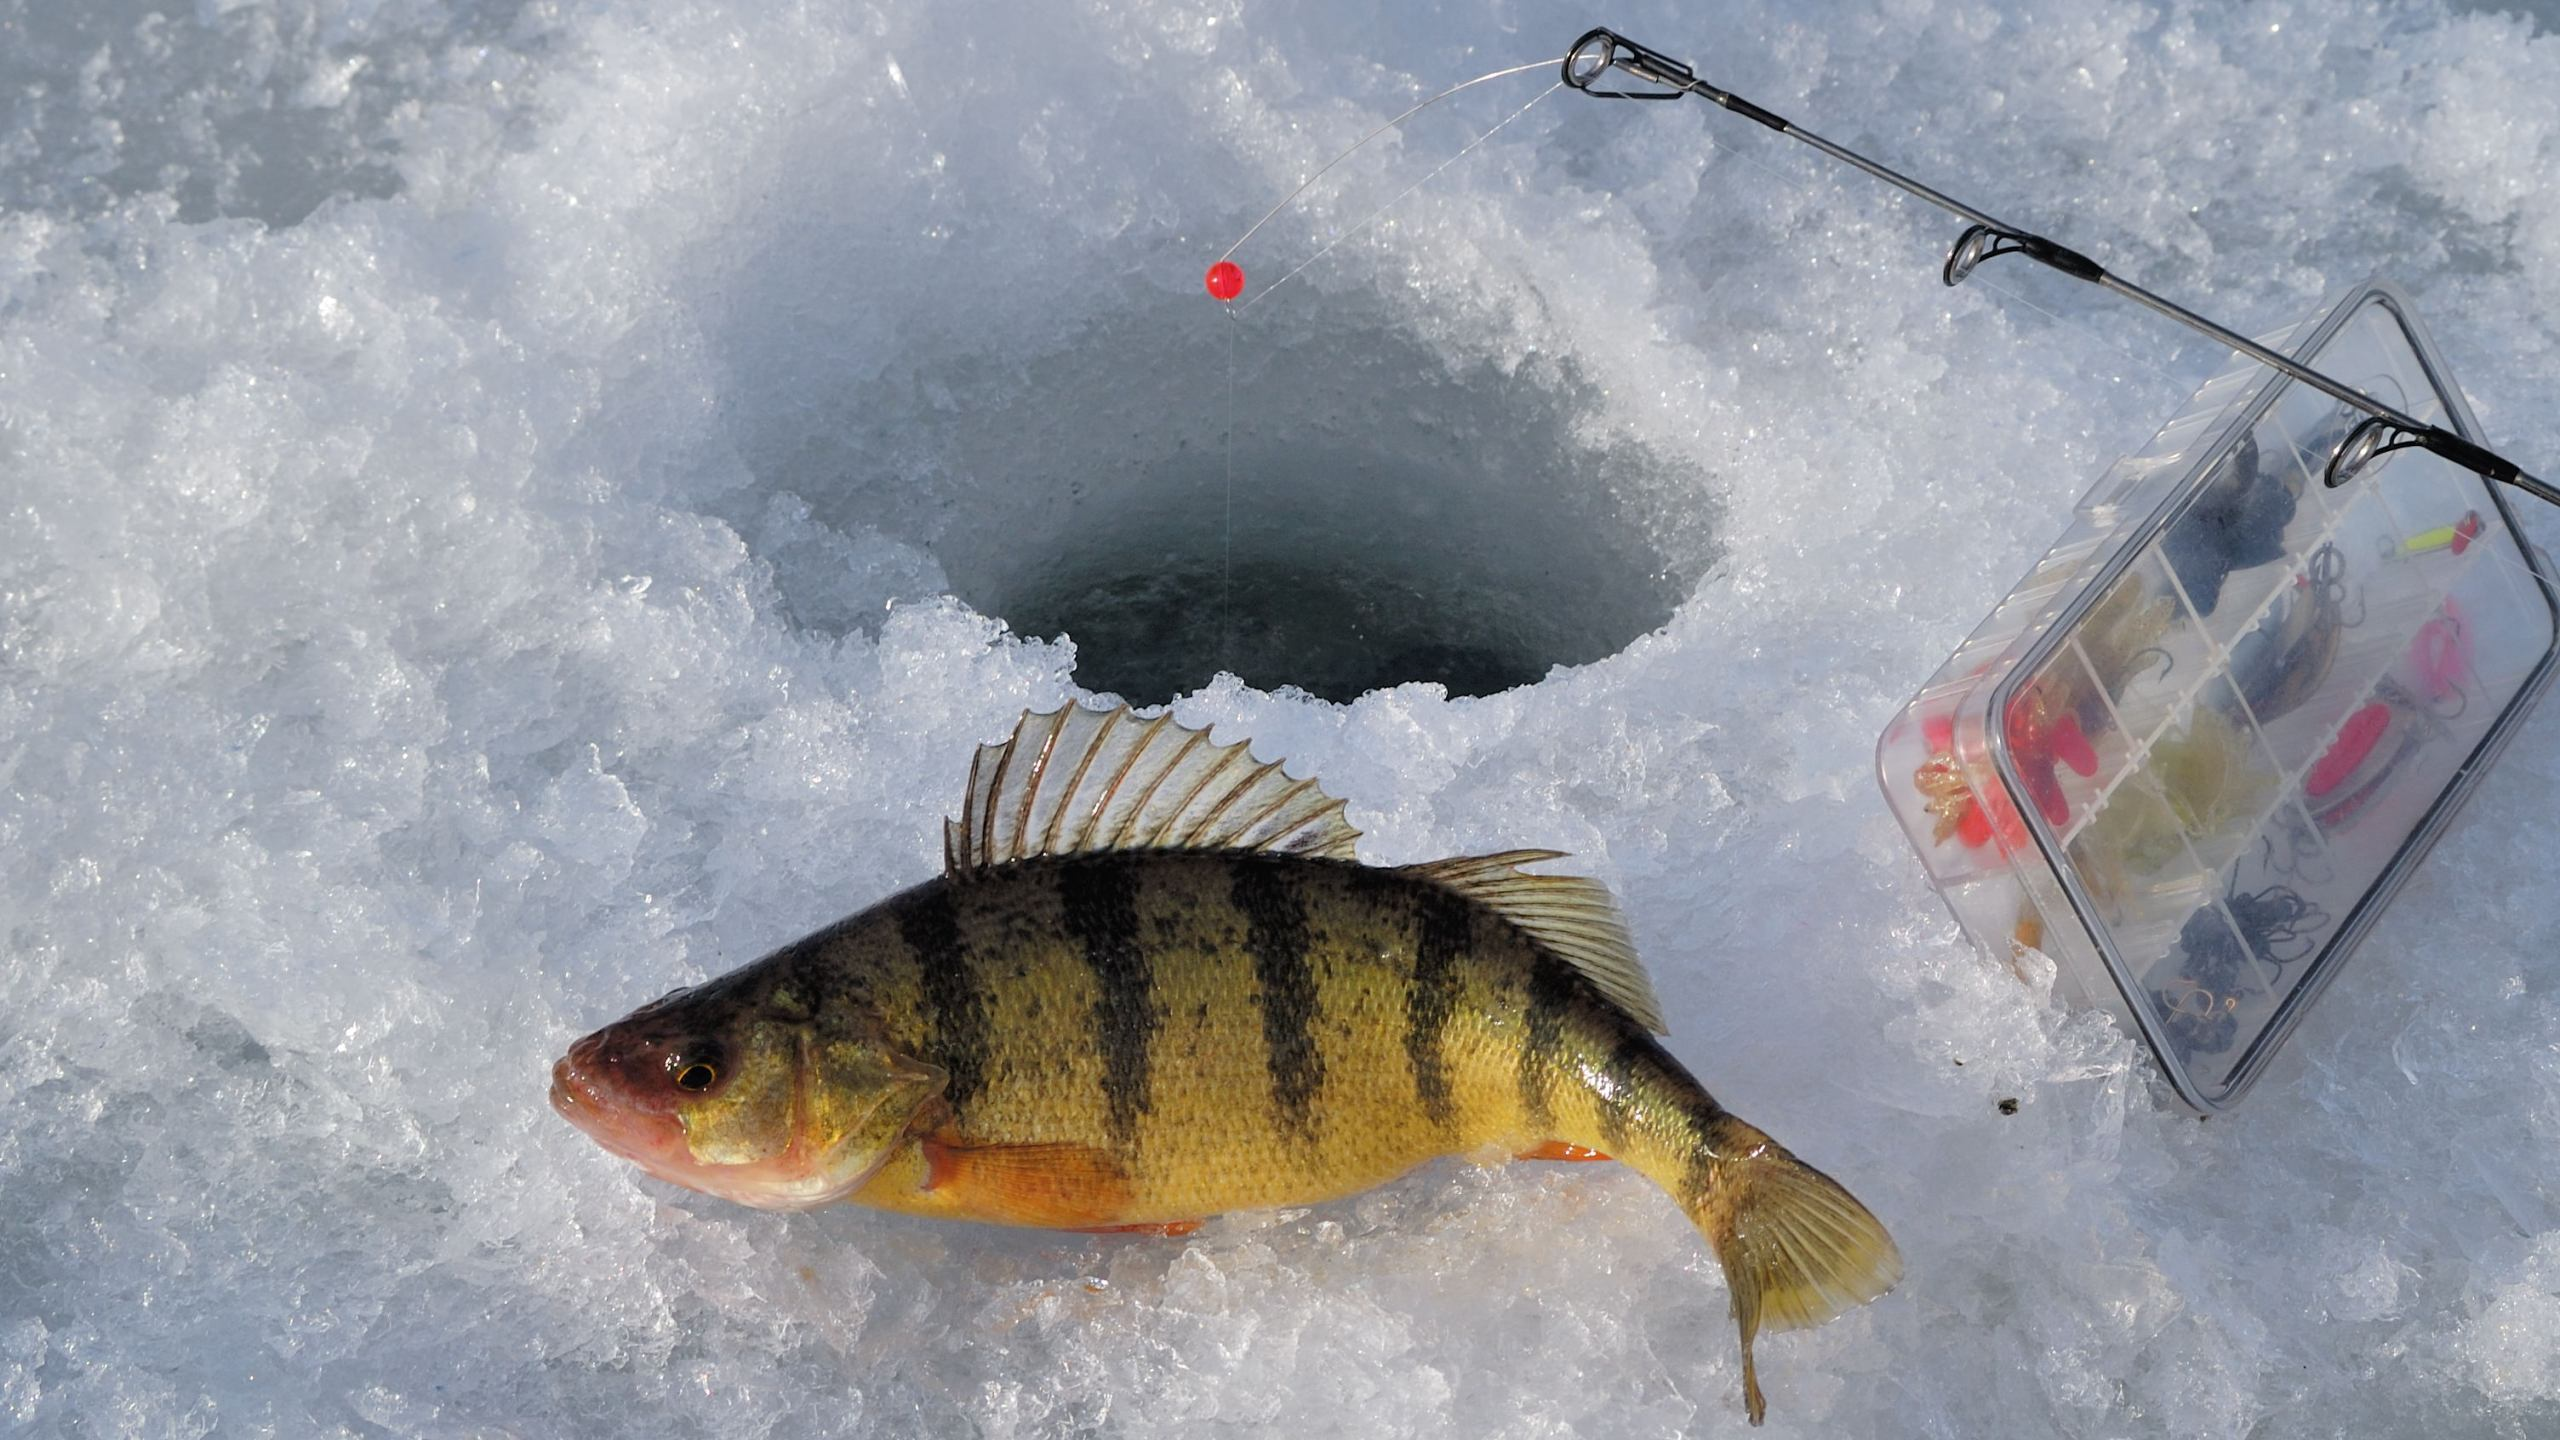 ICE FISHING_1486764722385.jpg